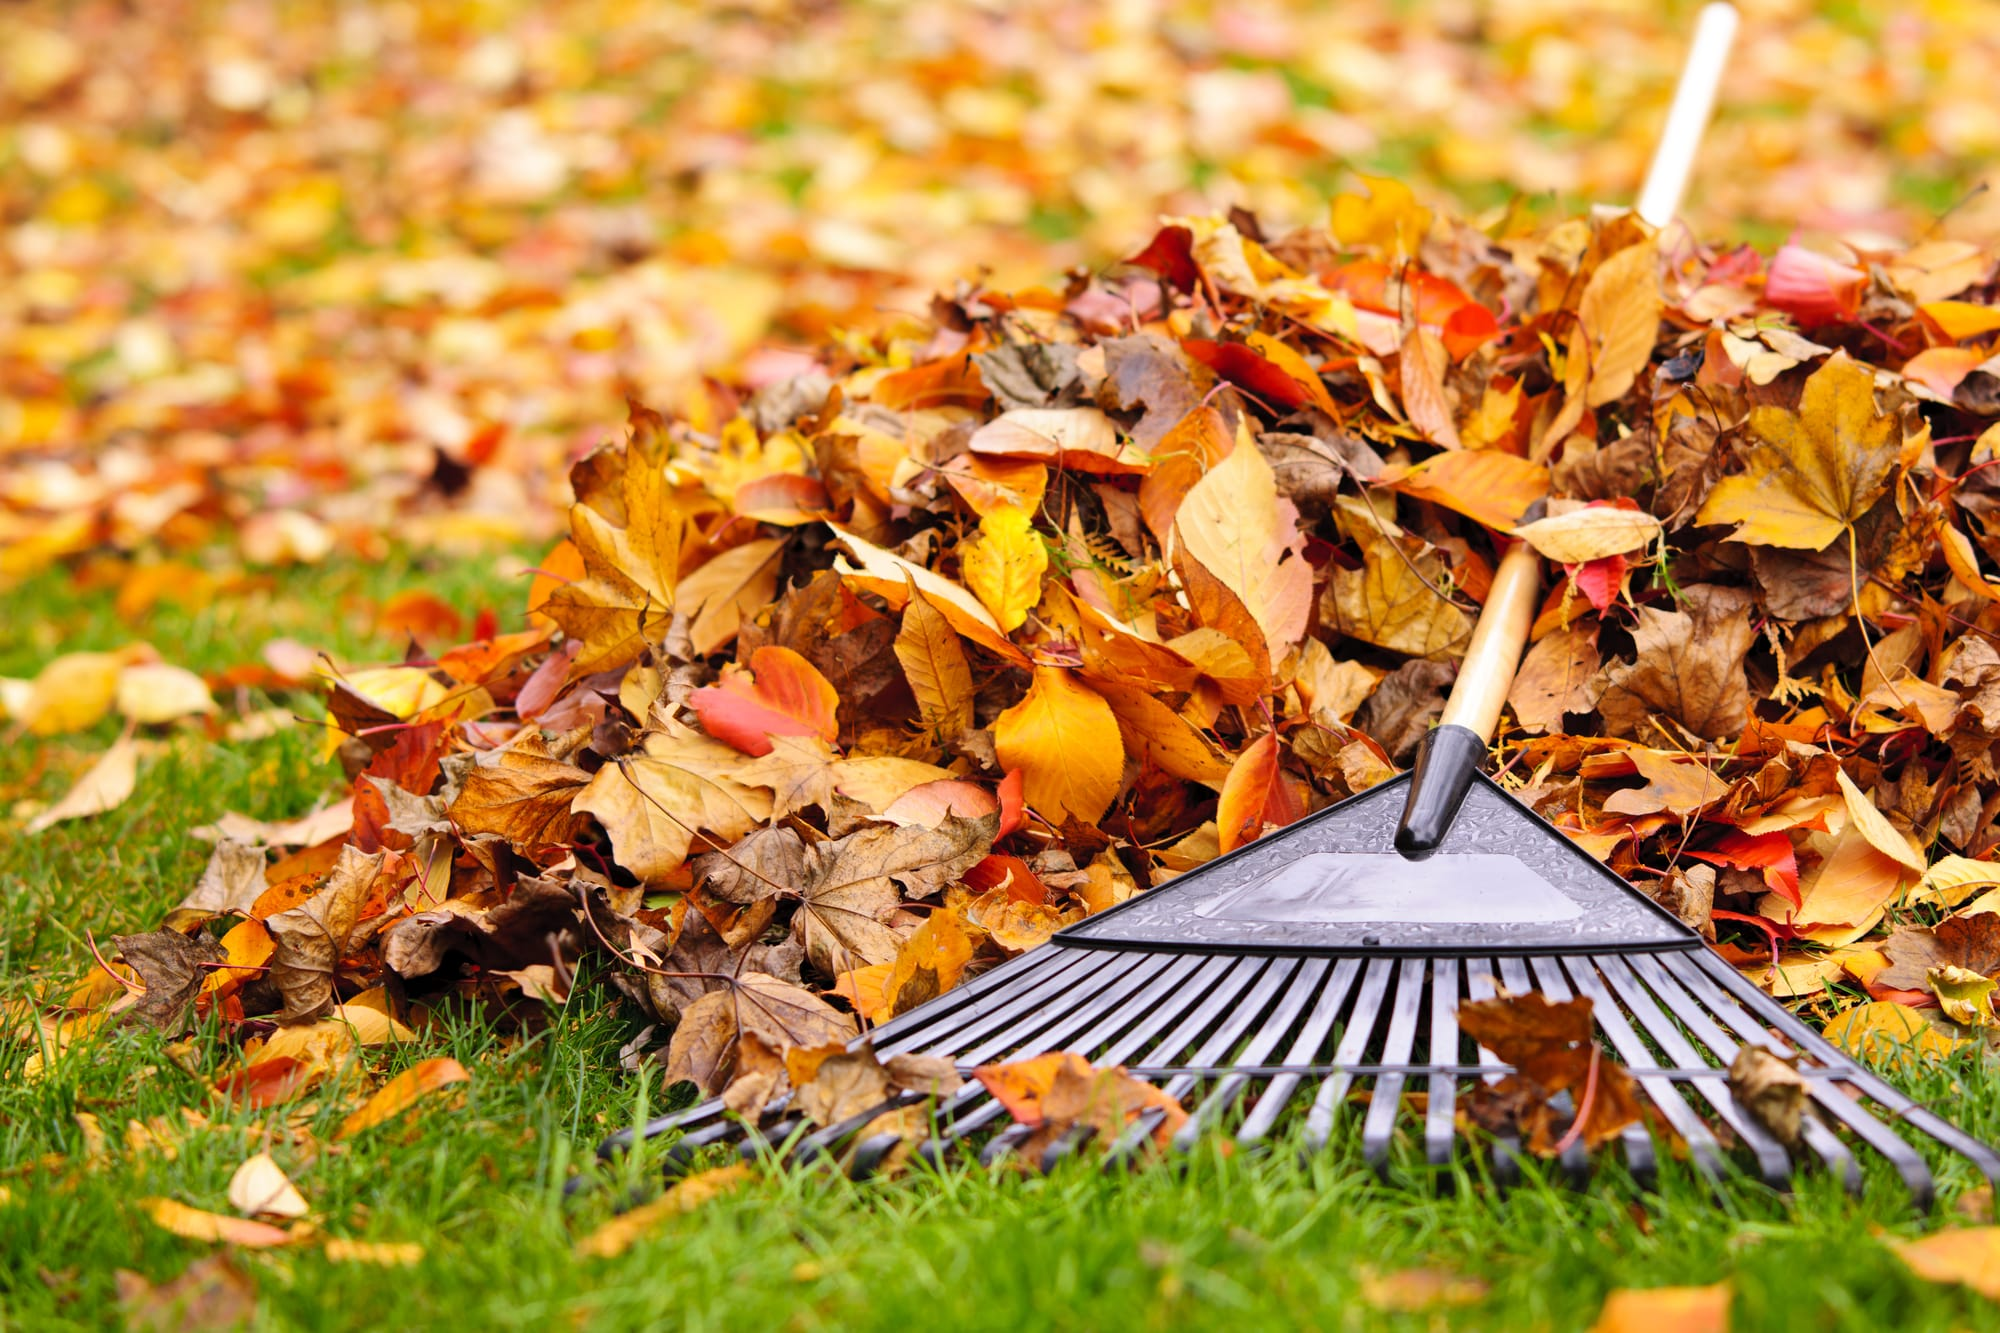 gardening tips for autumn